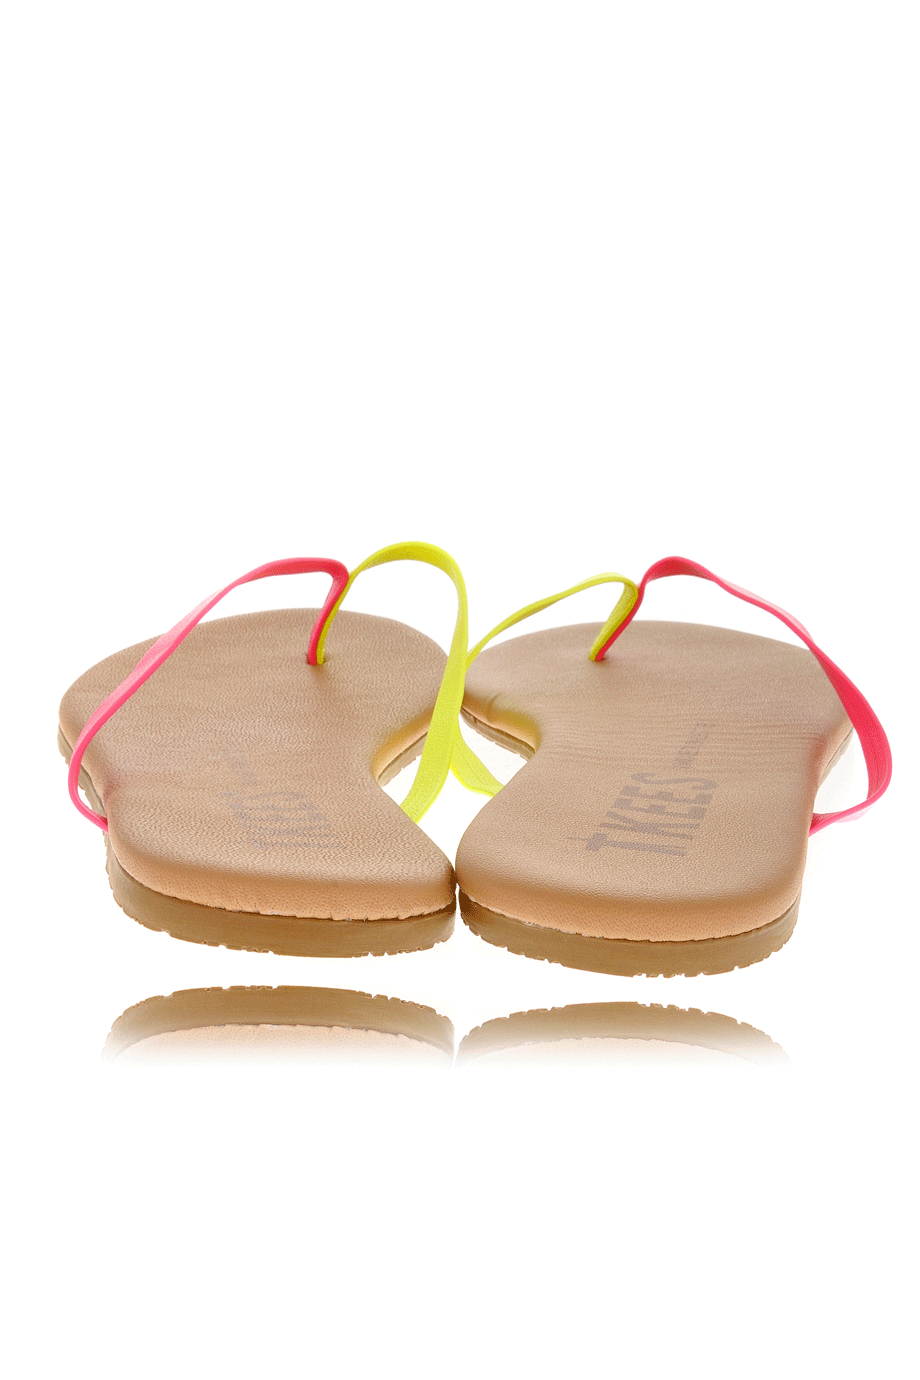 85e960327374 TKEES MIXED PALETTE Pink Citrus Leather Thong Sandals – PRET-A ...